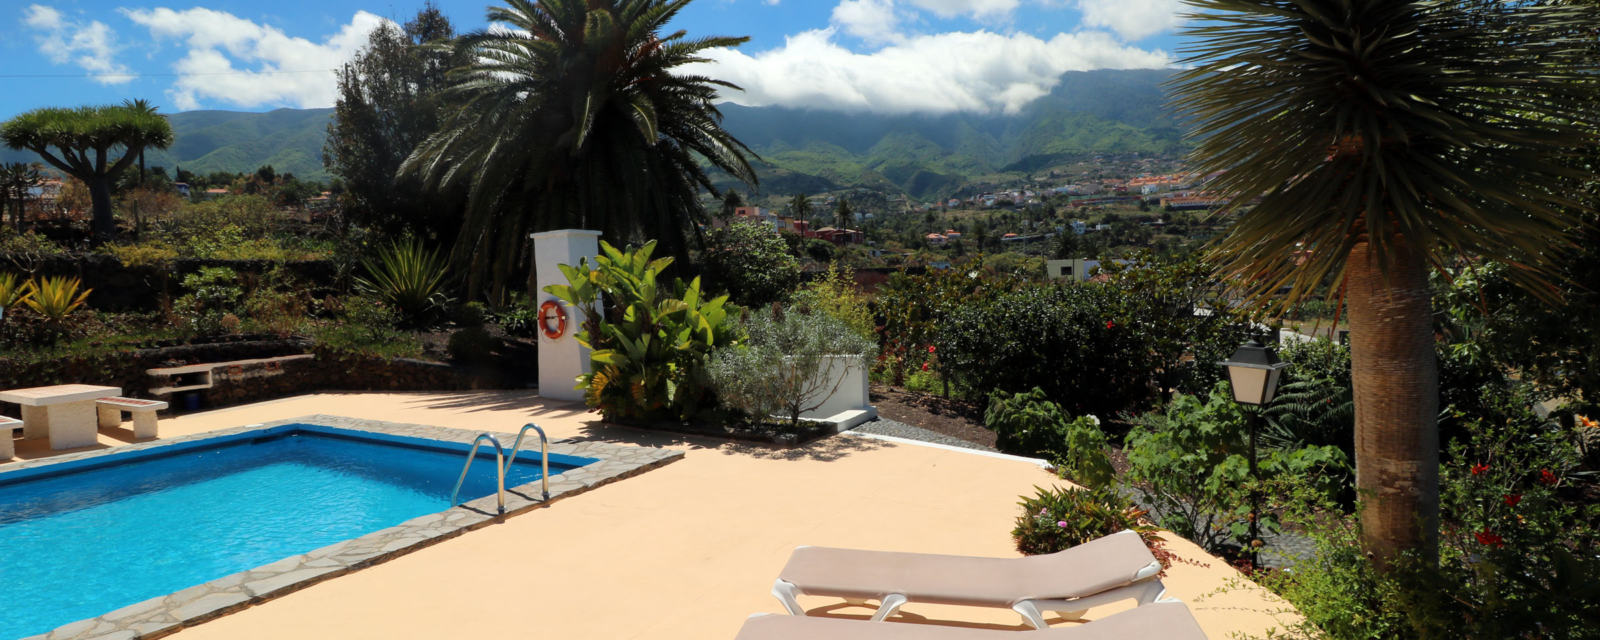 La Palma - Apartments Miranda - Pool view